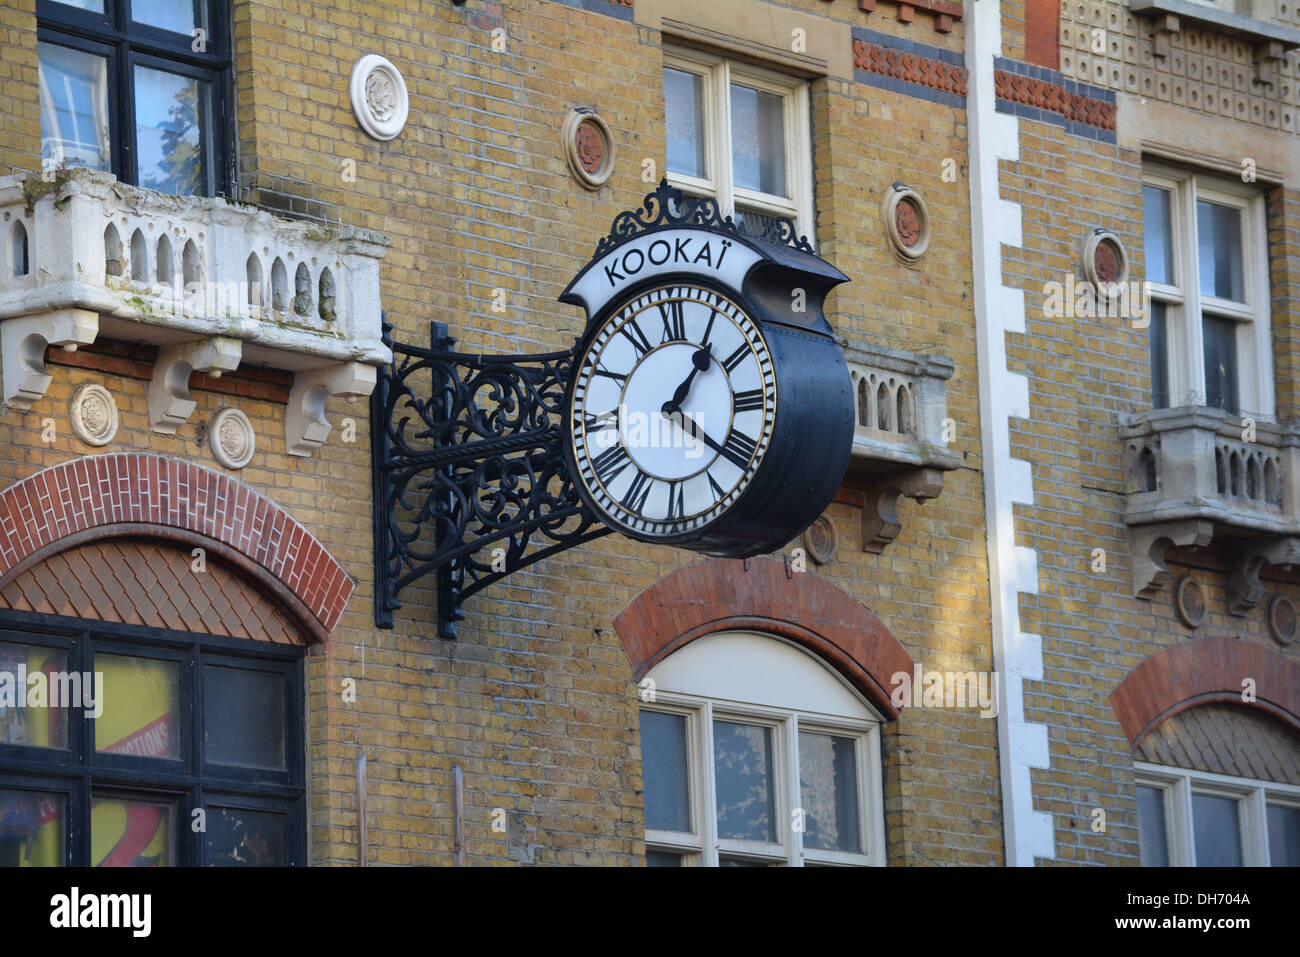 Clock in Croydon High Street. - Stock Image